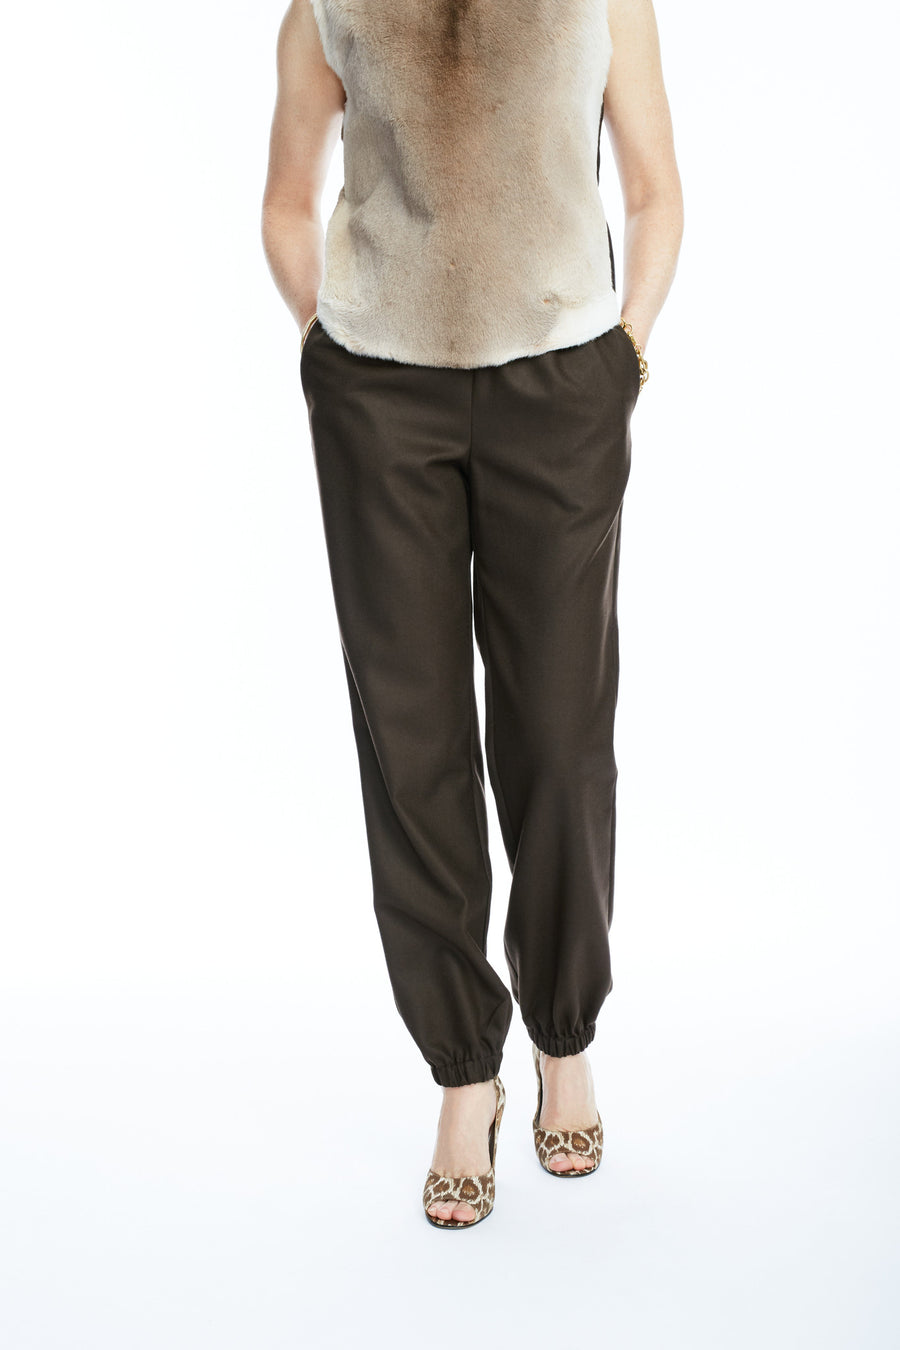 TWIG Classic Light Wool Pants